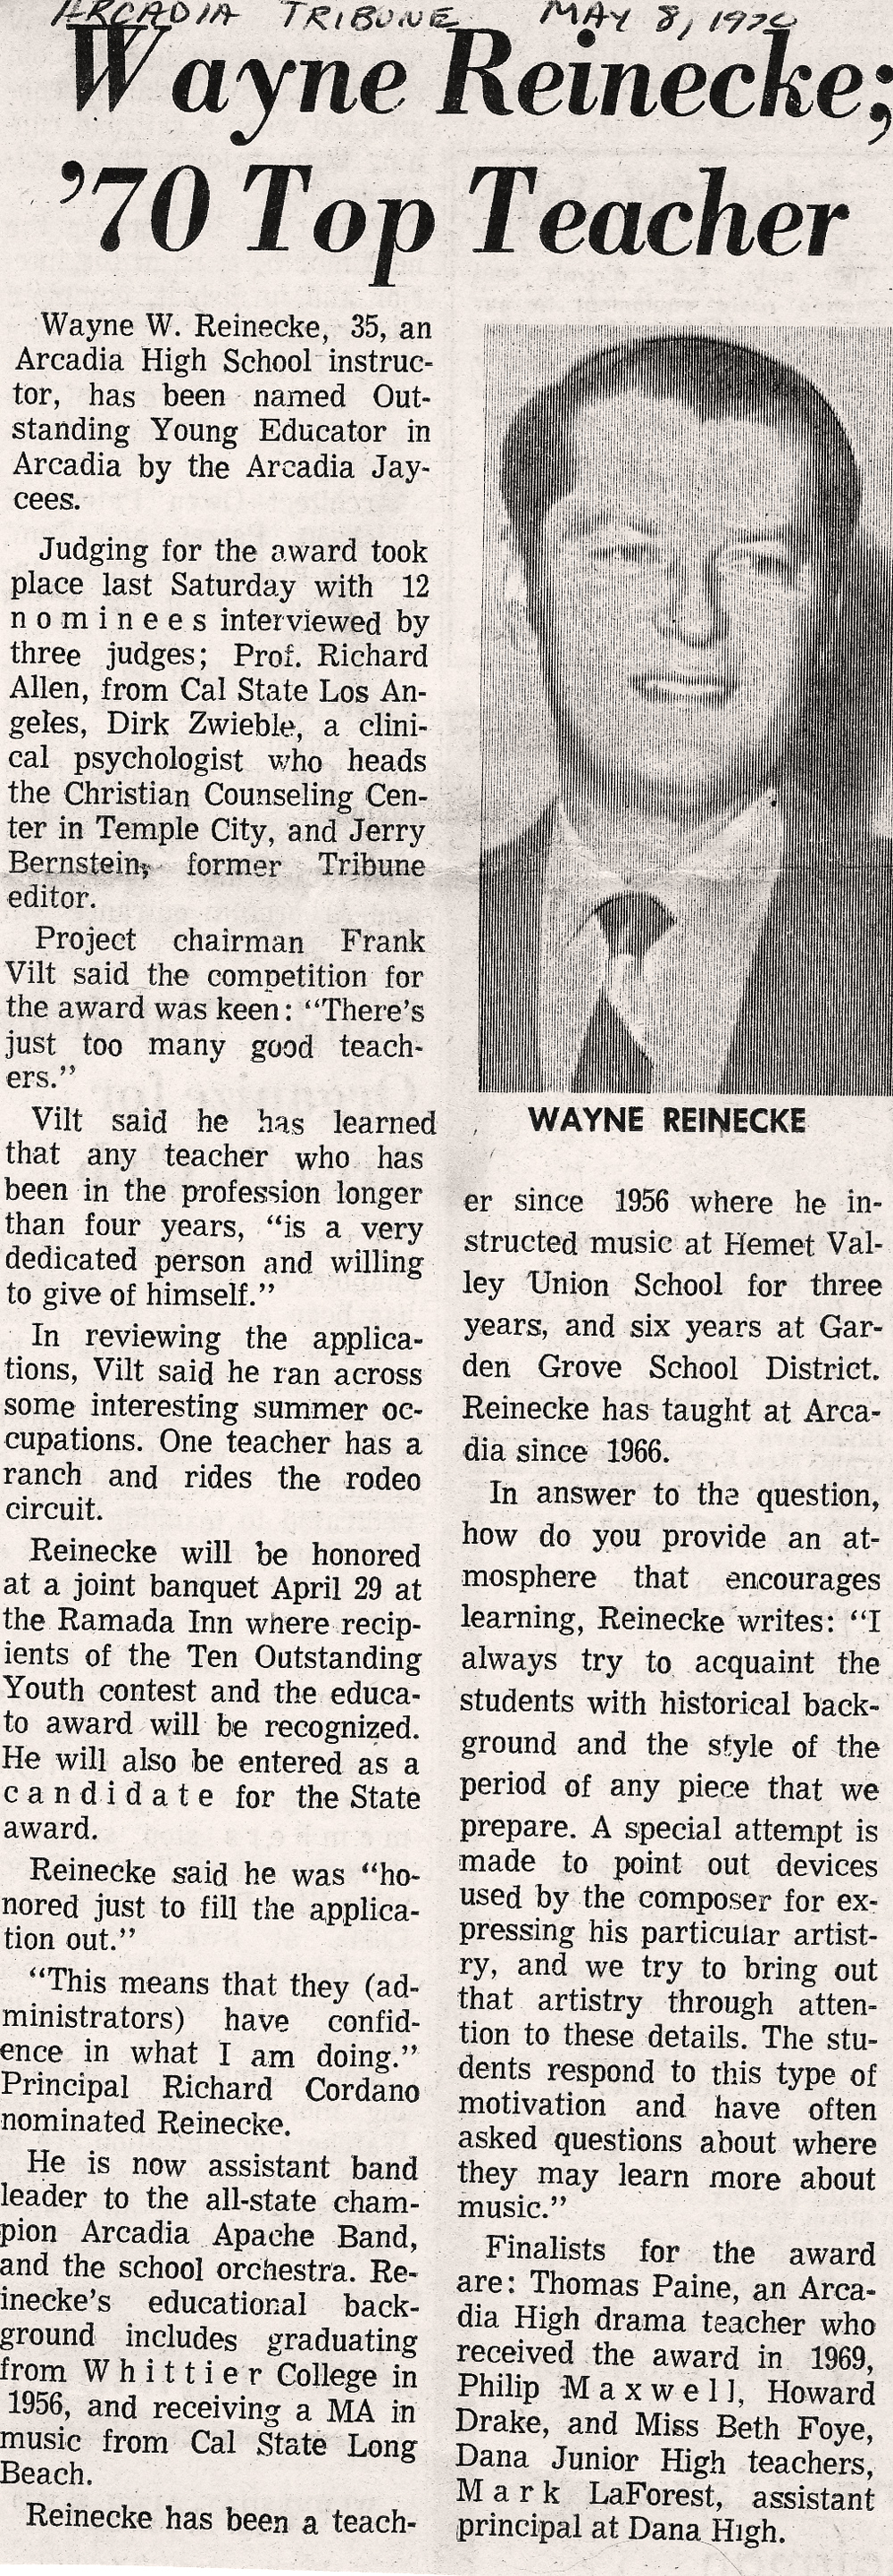 """Wayne Reinecke; 70 Top Teacher"", Arcadia Tribune, May 9, 1970"